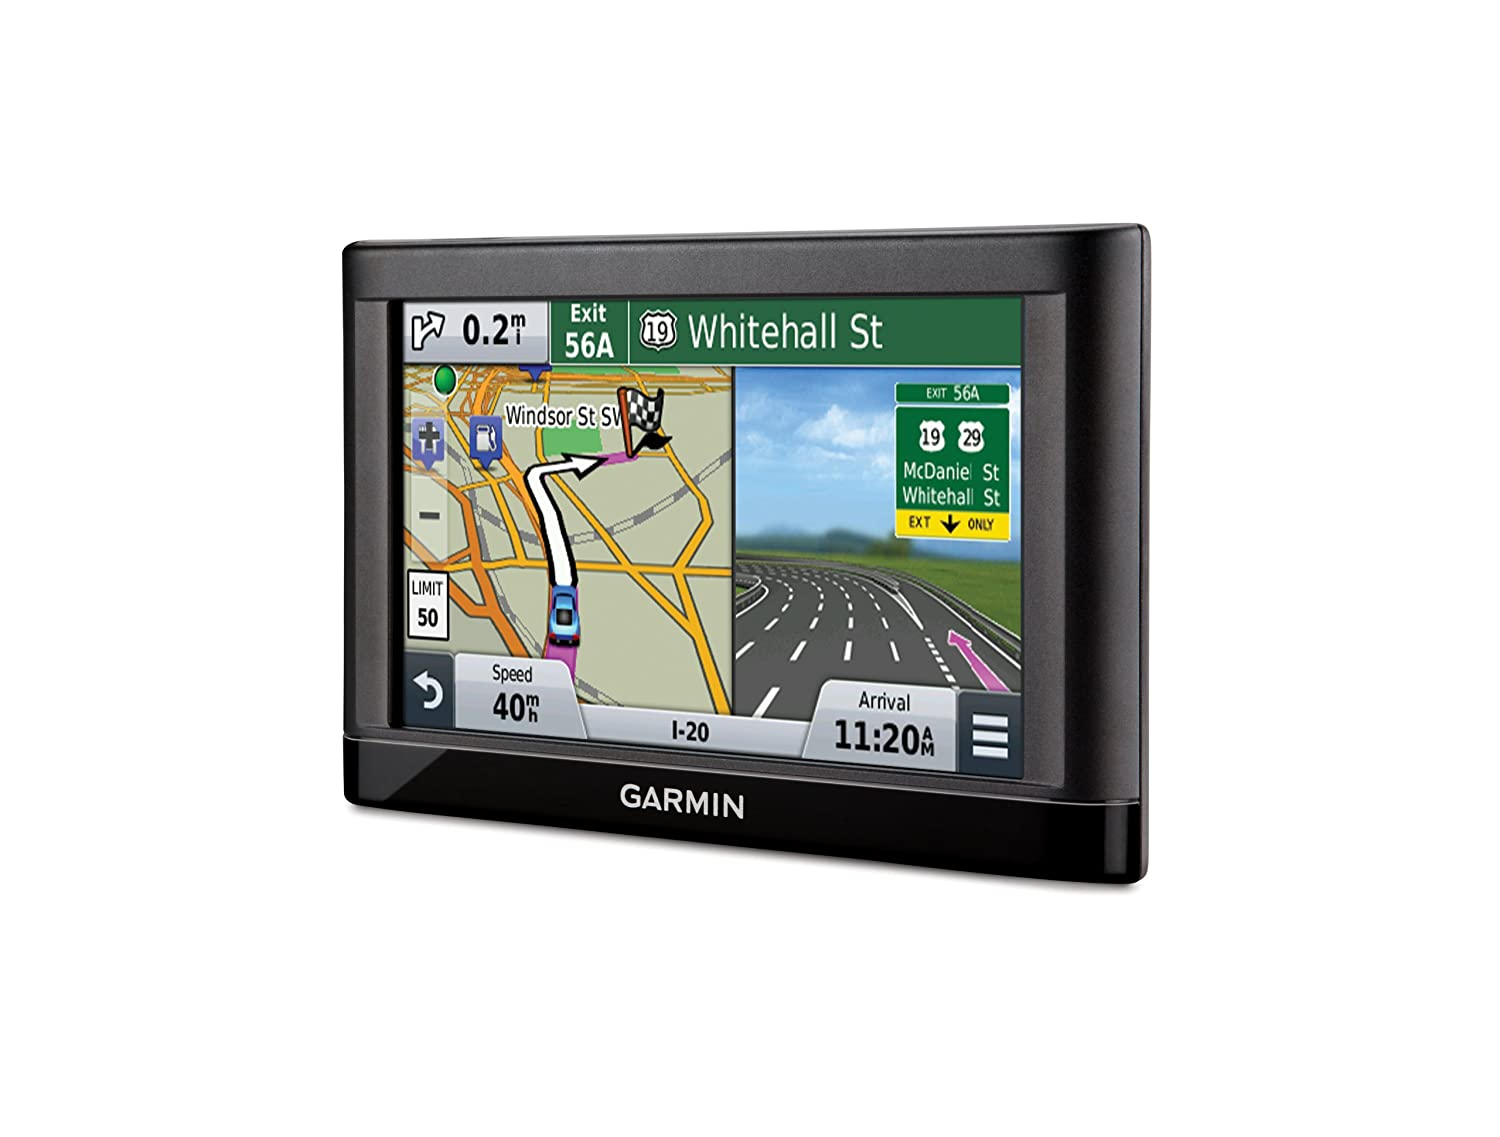 Amazon.com: Garmin nüvi 55 GPS Navigators System with Spoken Turn-By-Turn  Directions, Preloaded Maps and Speed Limit Displays (Lower 49 U.S. States):  Cell ...